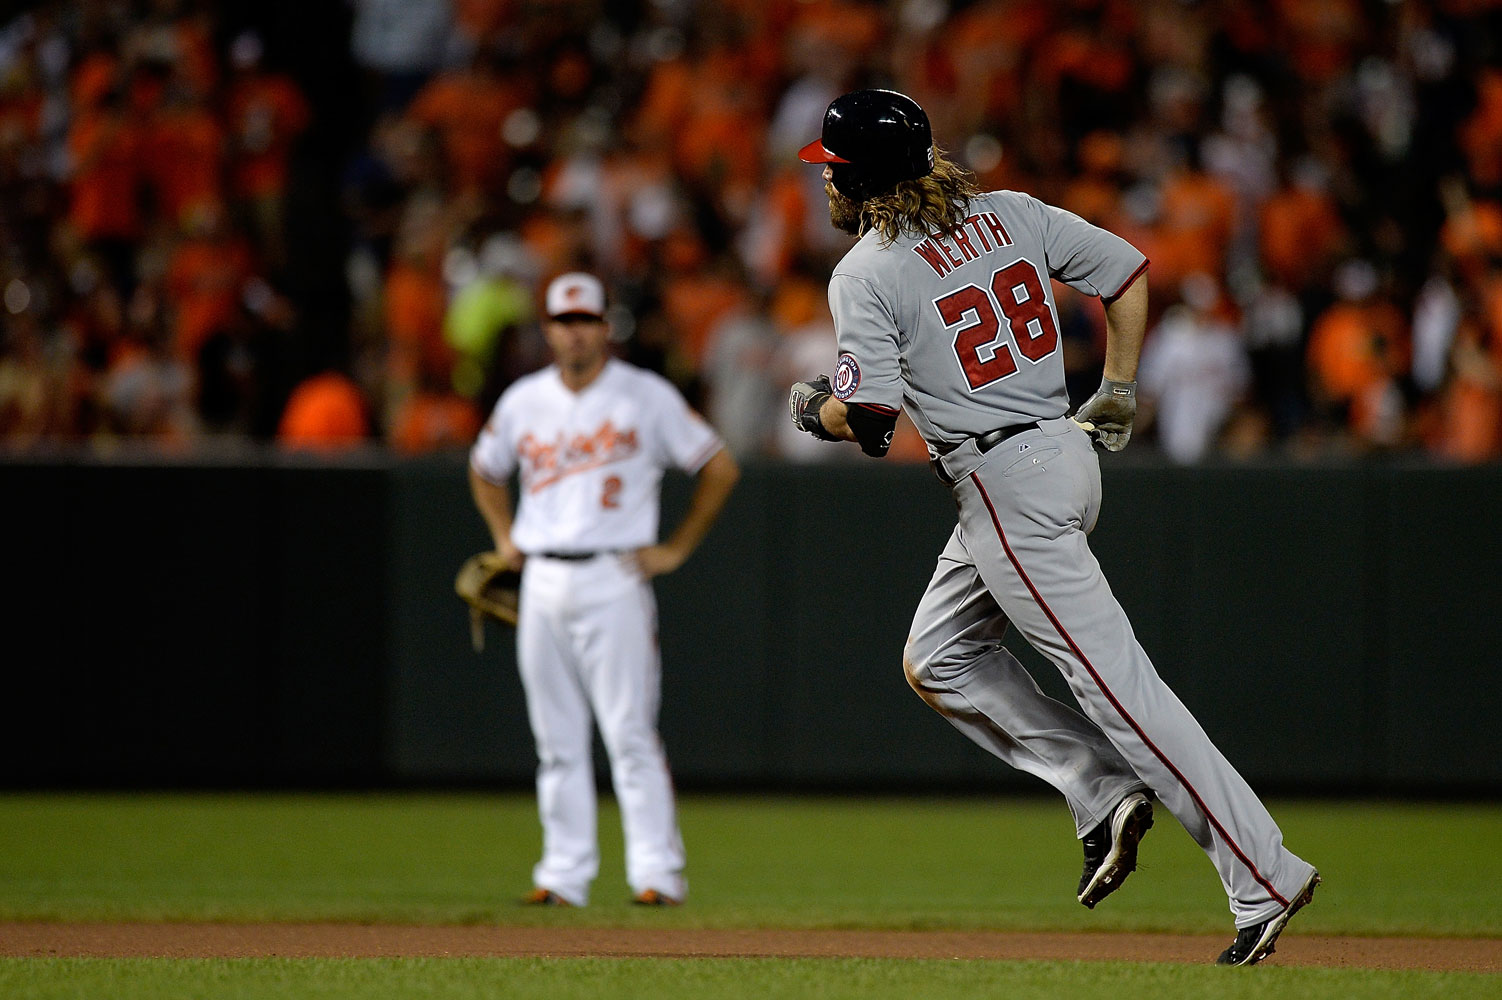 Is a Beltways Series in store?